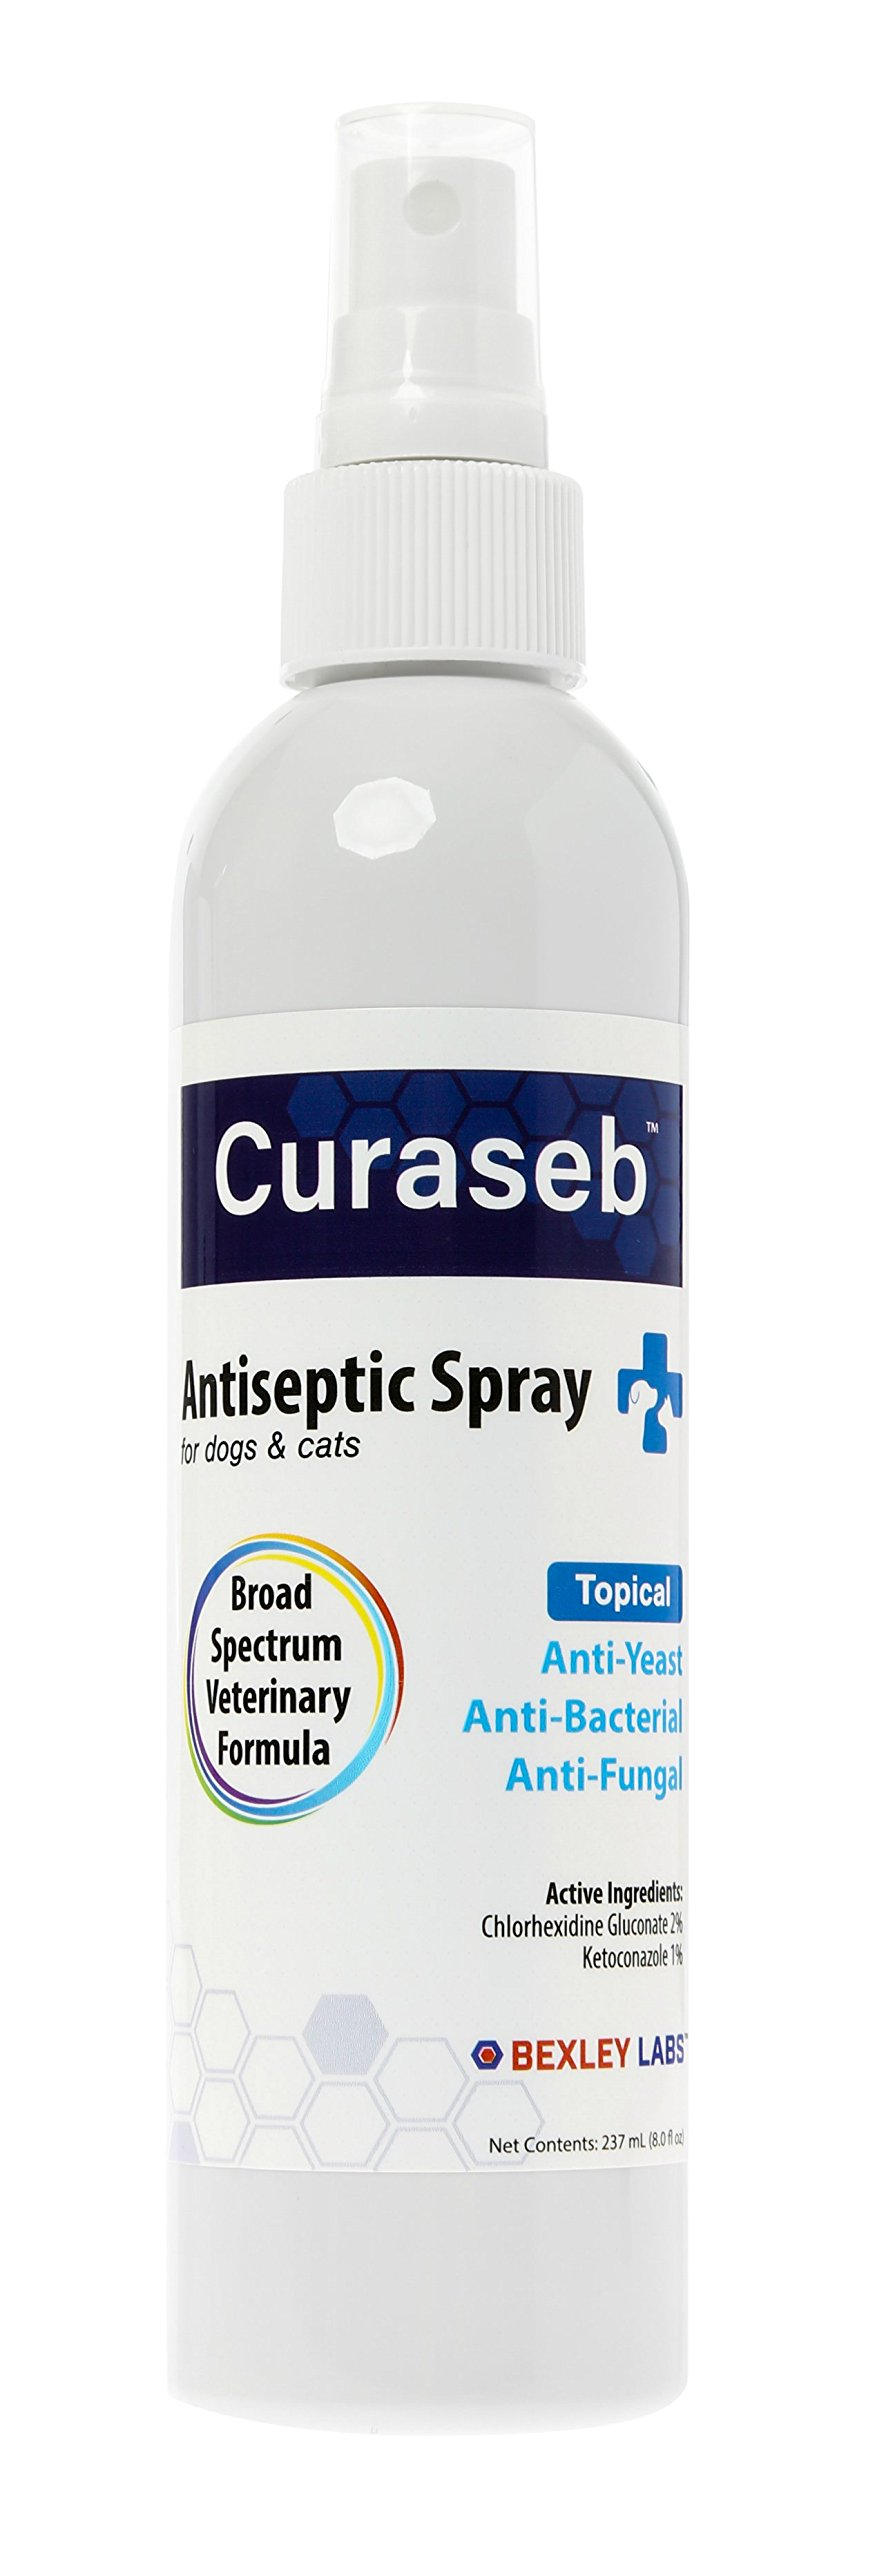 Curaseb | Chlorhexidine Spray for Dogs & Cats - Anti Itch Antifungal & Antiba